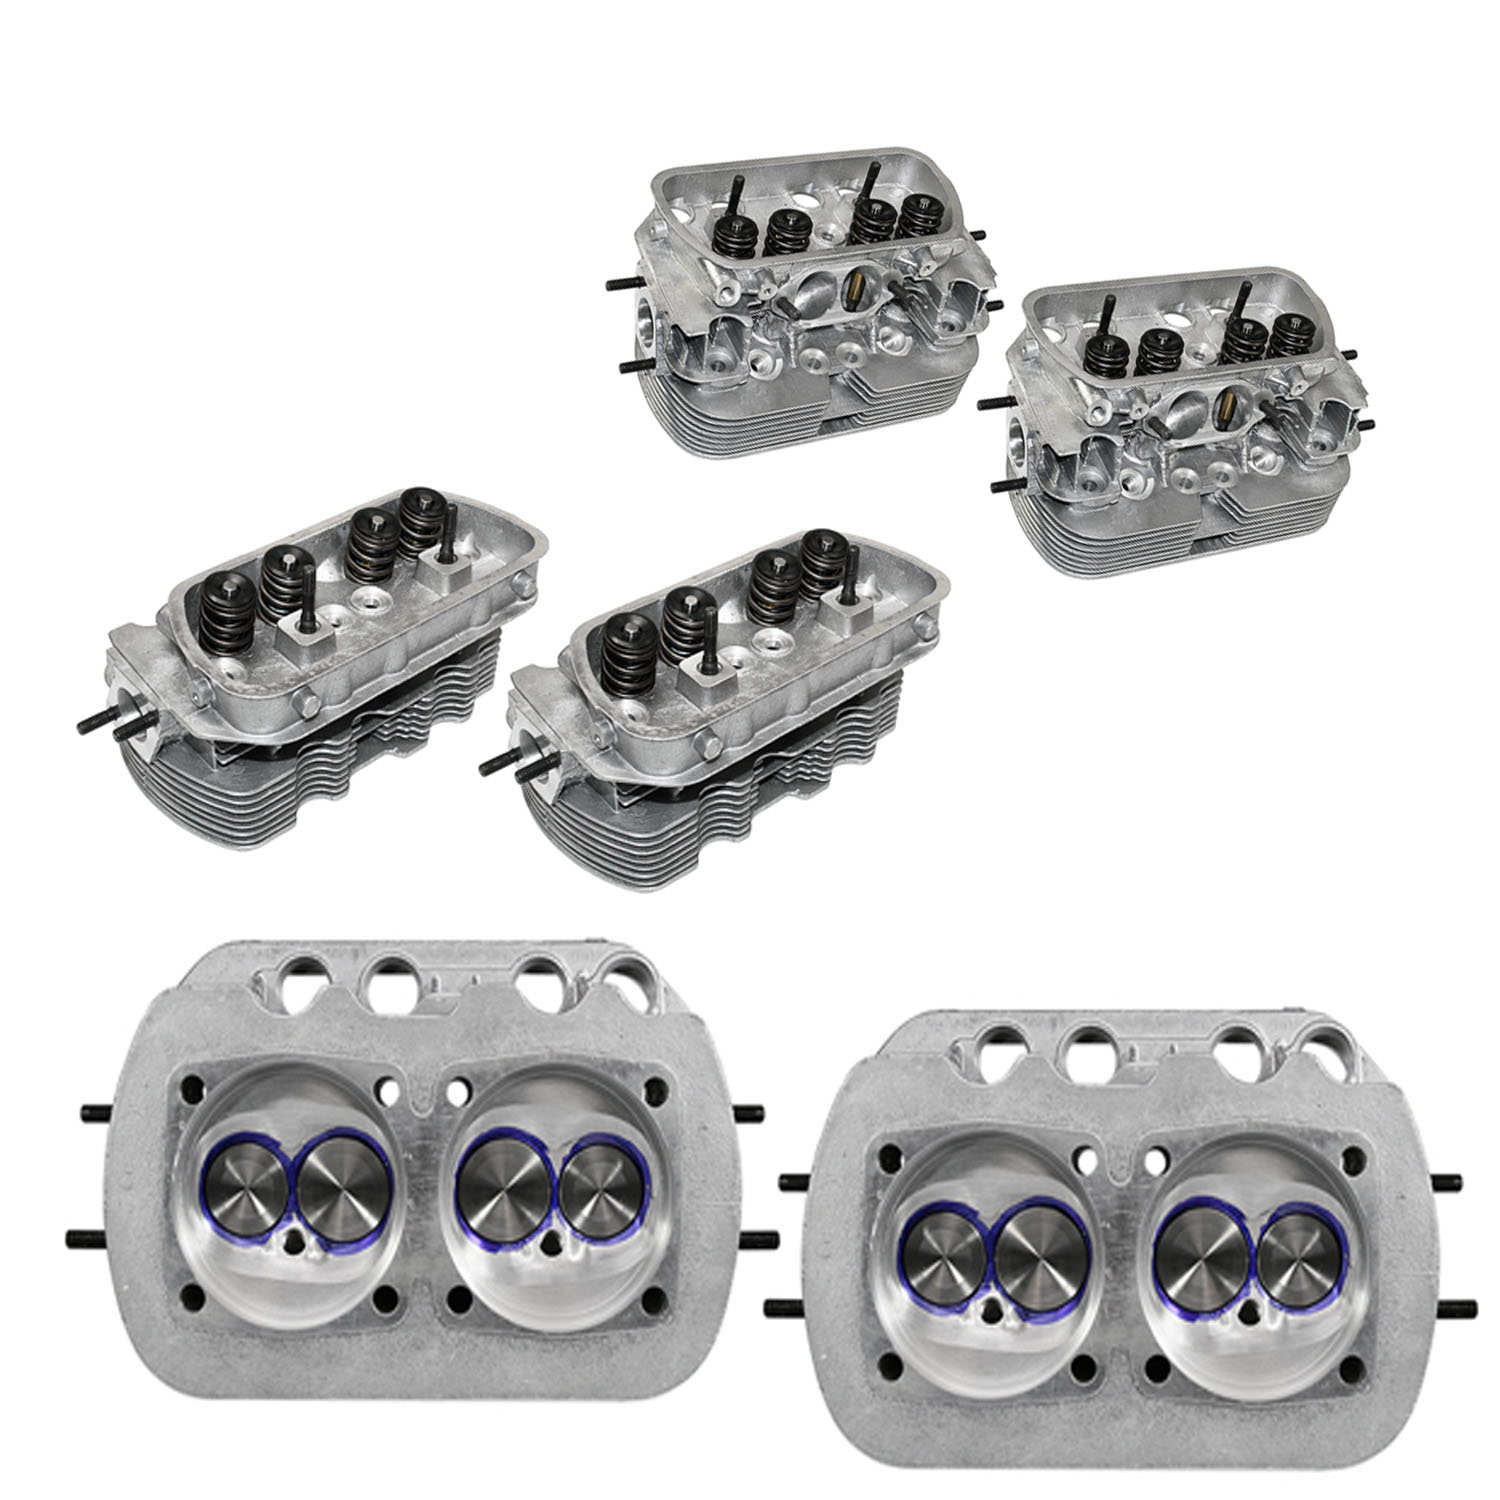 Kühltek Motorwerks Steve Tim's Ported & Polished Performance Cylinder Heads